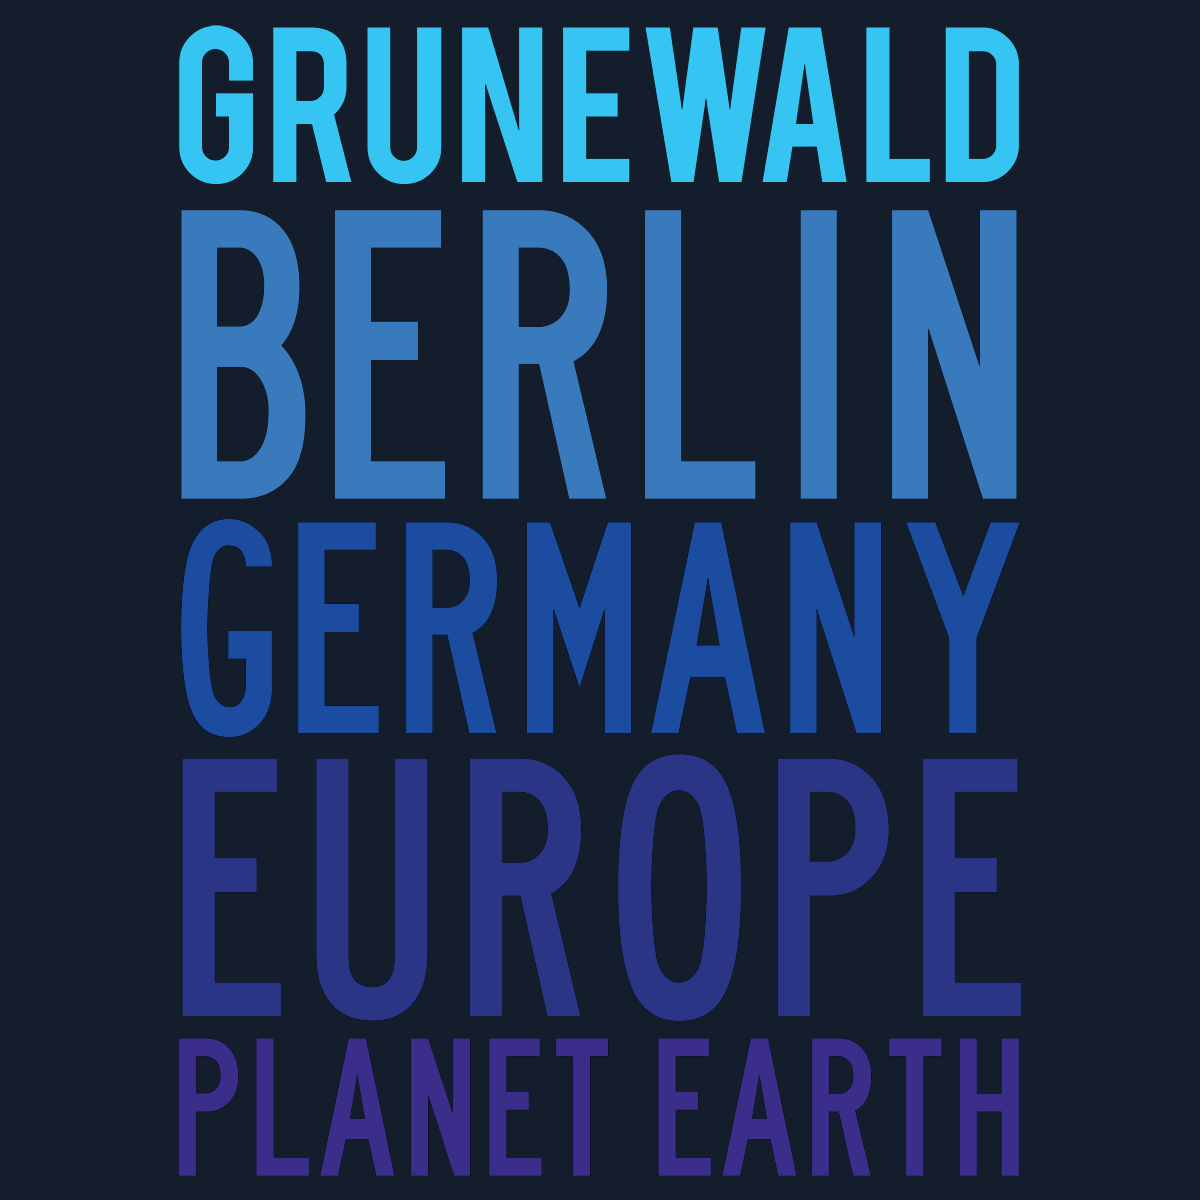 Grunewald Planet Earth